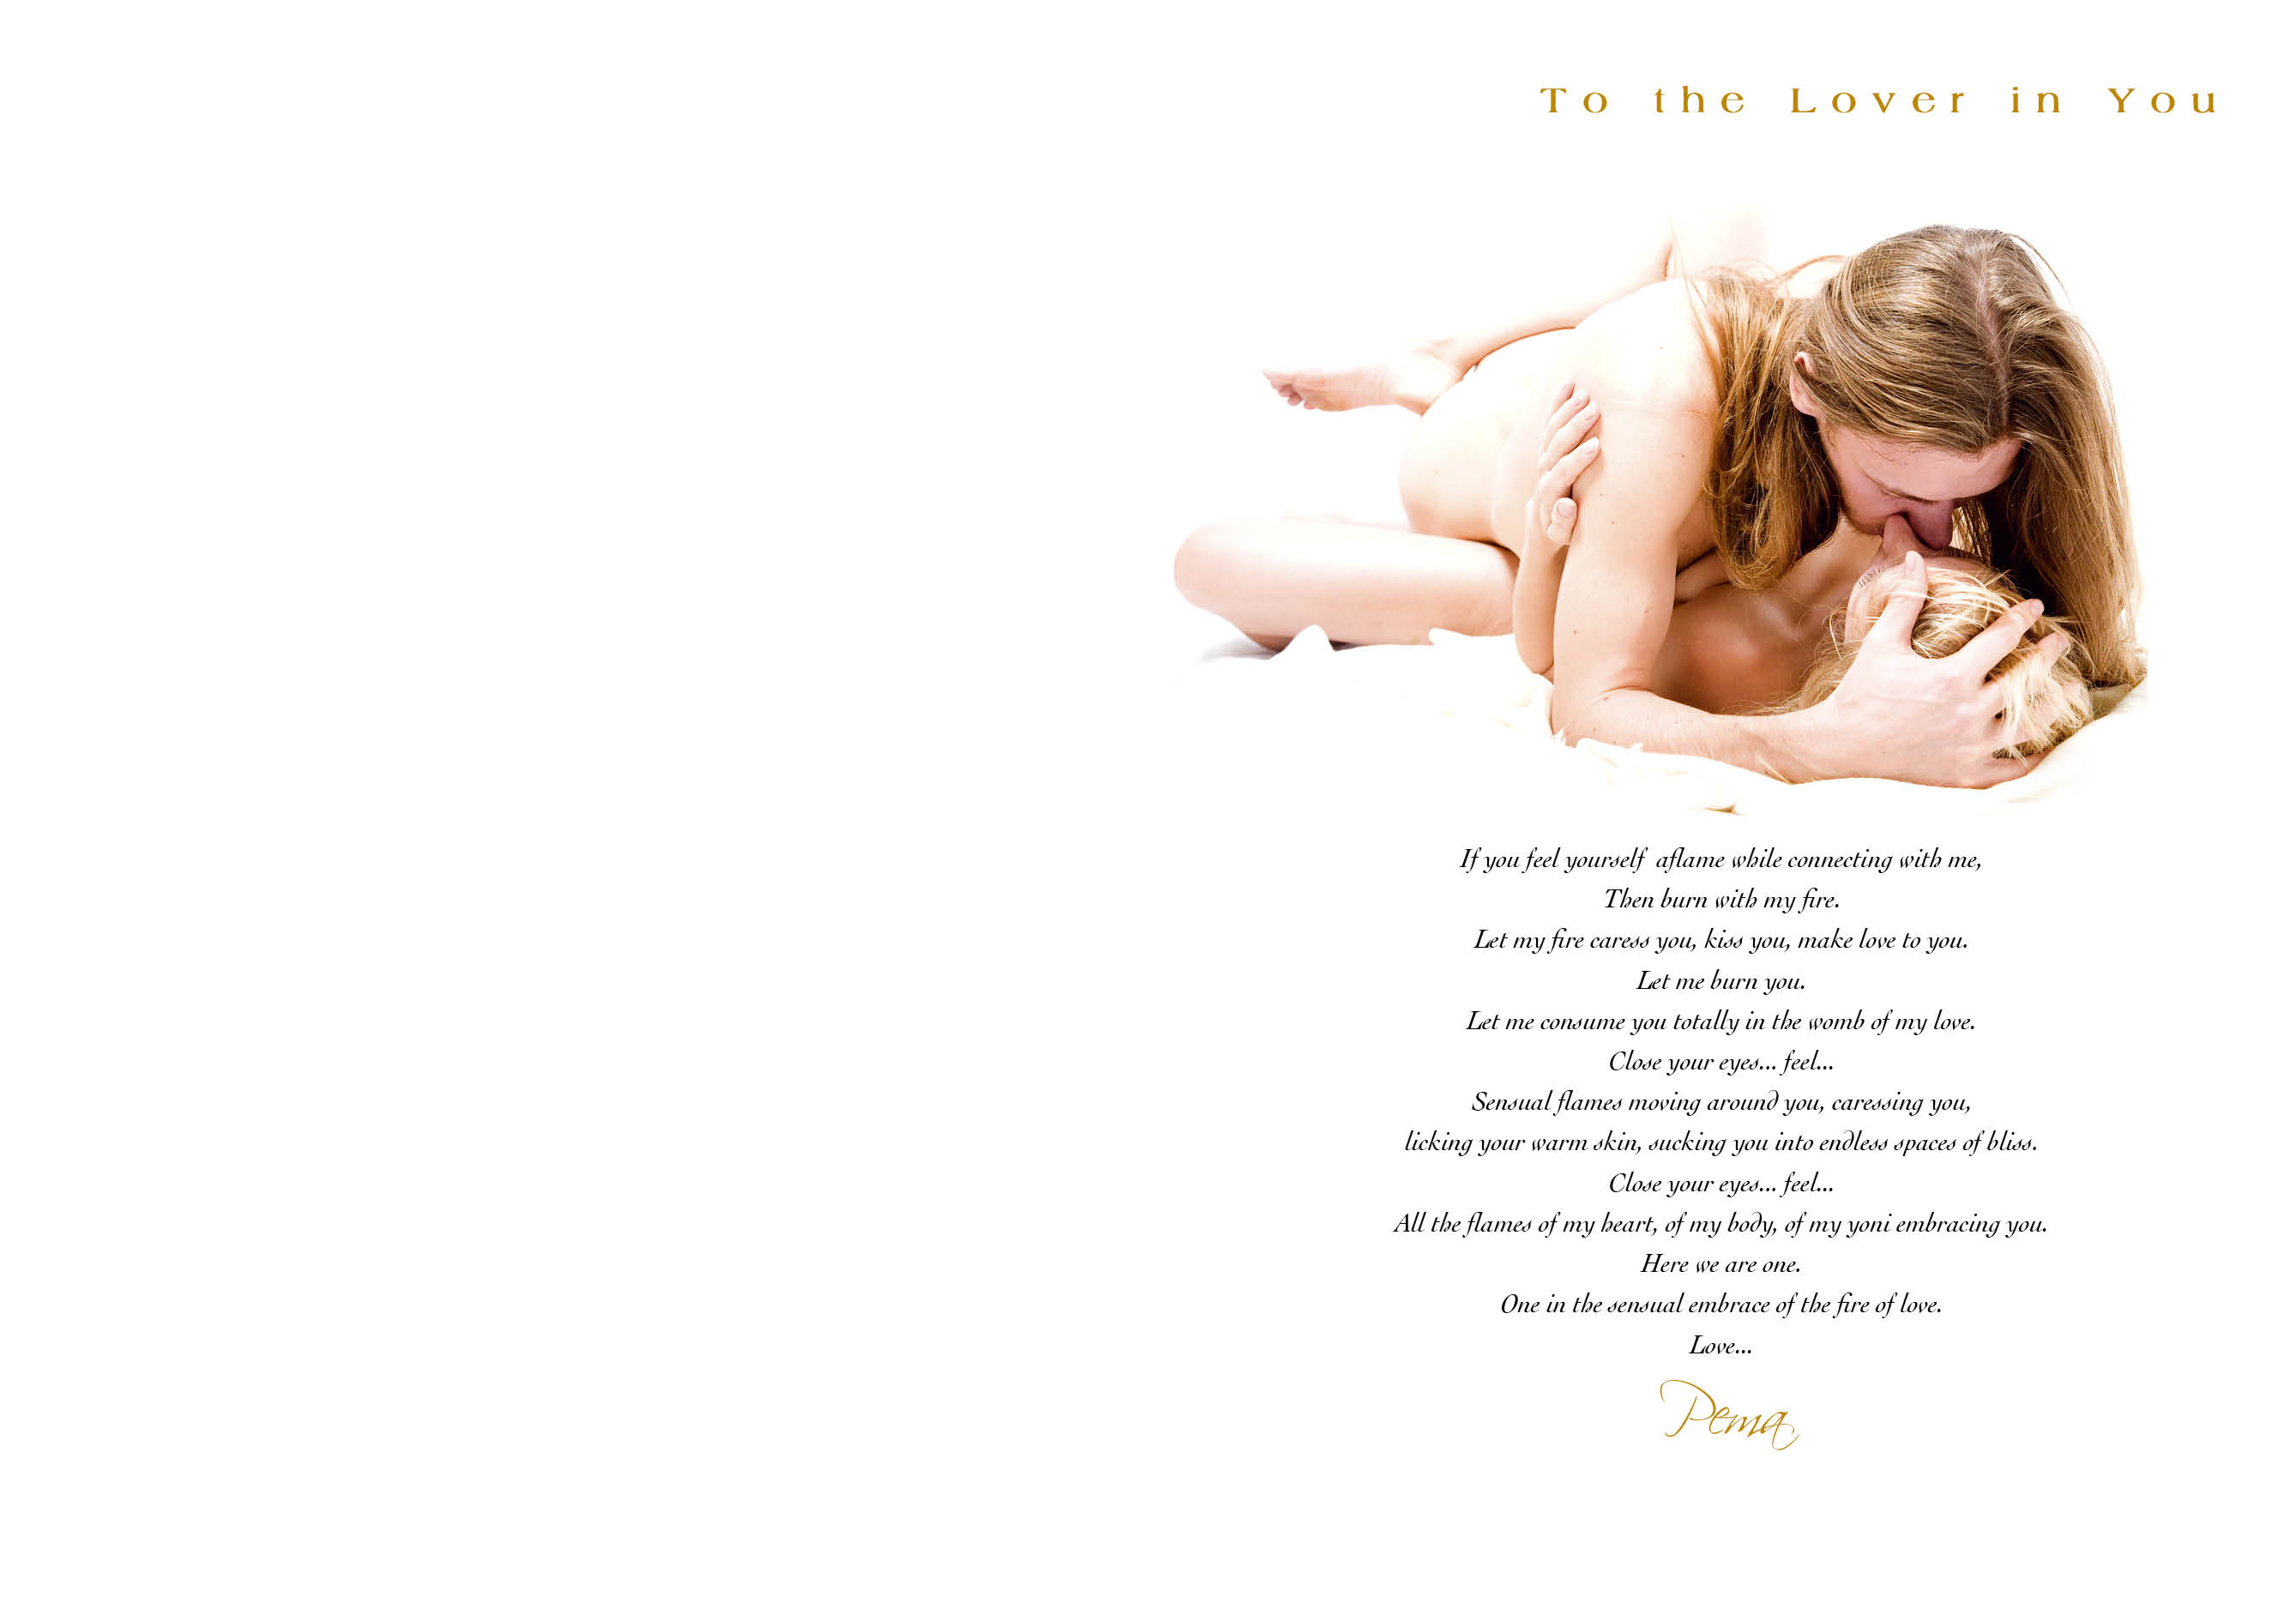 The lover in you